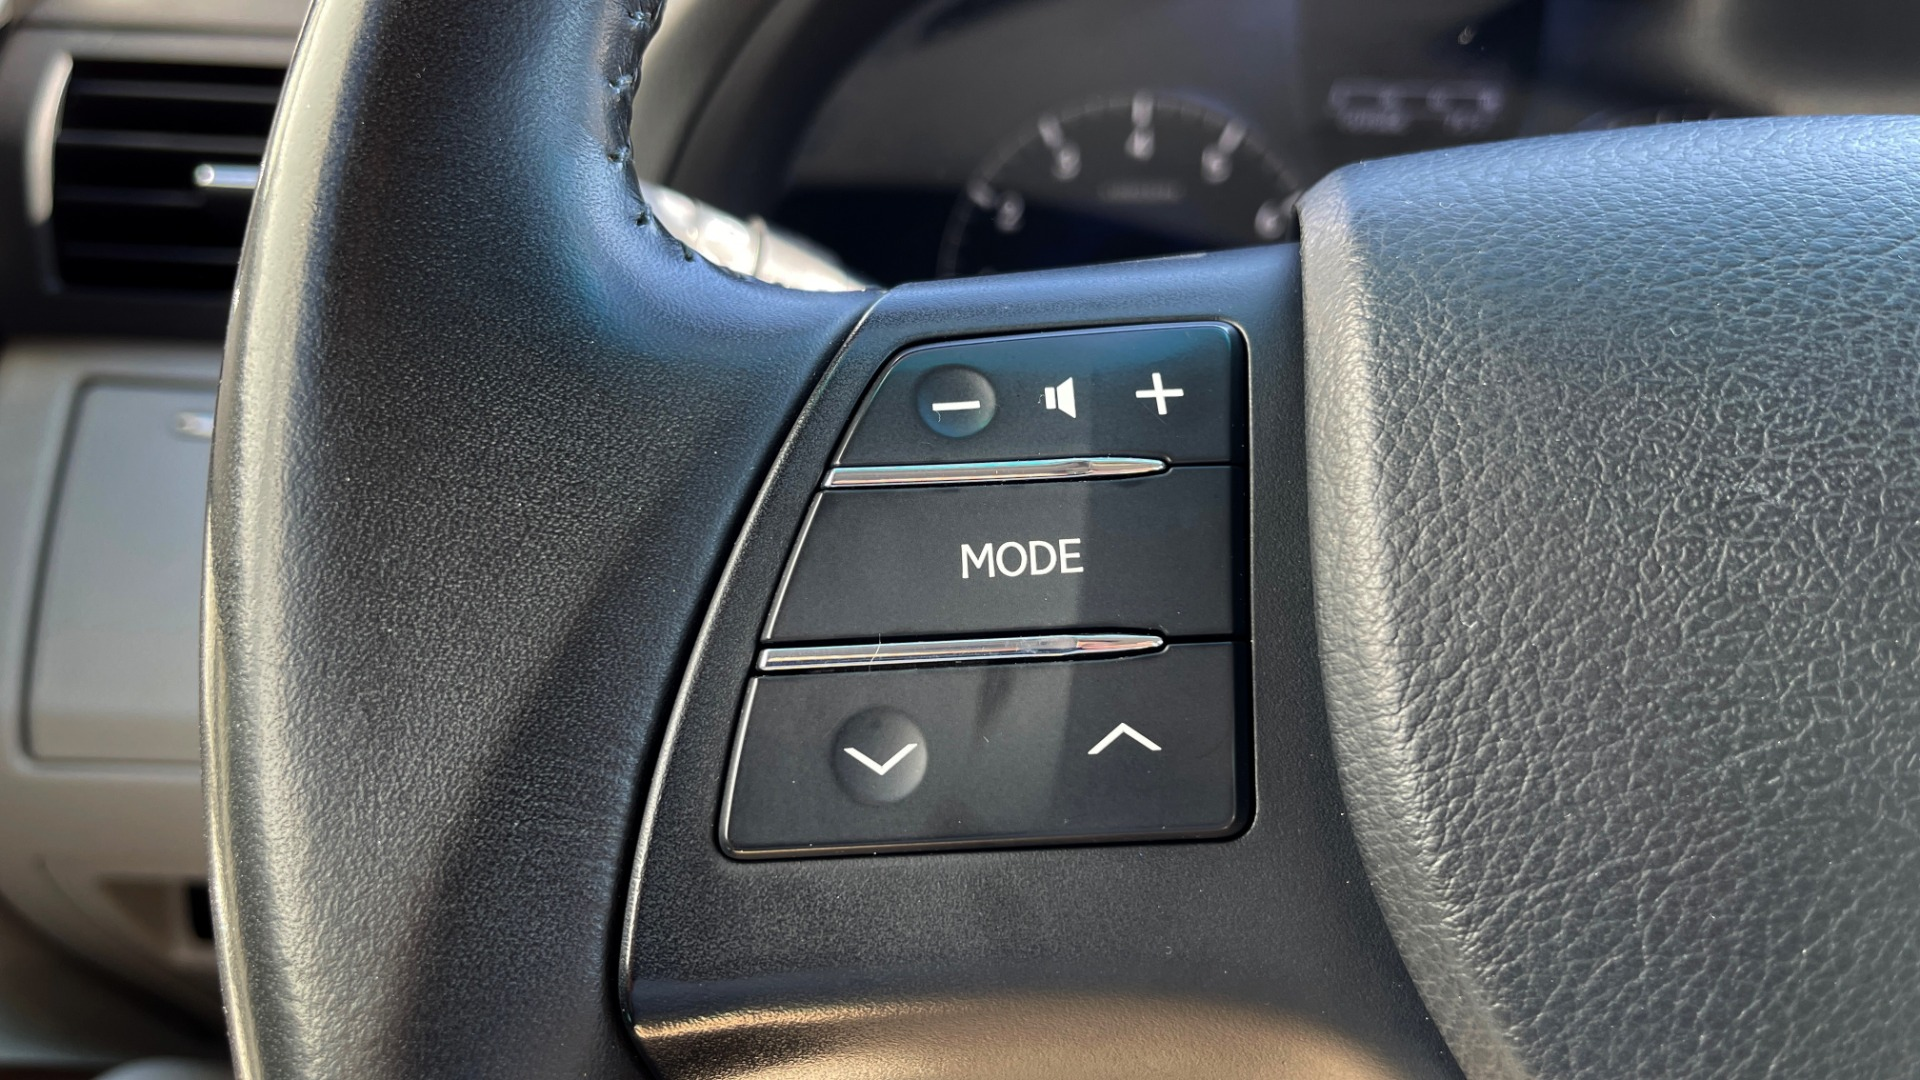 Used 2011 Lexus RX 350 PREMIUM / TOWING PREP PKG / VENTILATED STS / SUNROOF / REARVIEW for sale Sold at Formula Imports in Charlotte NC 28227 31